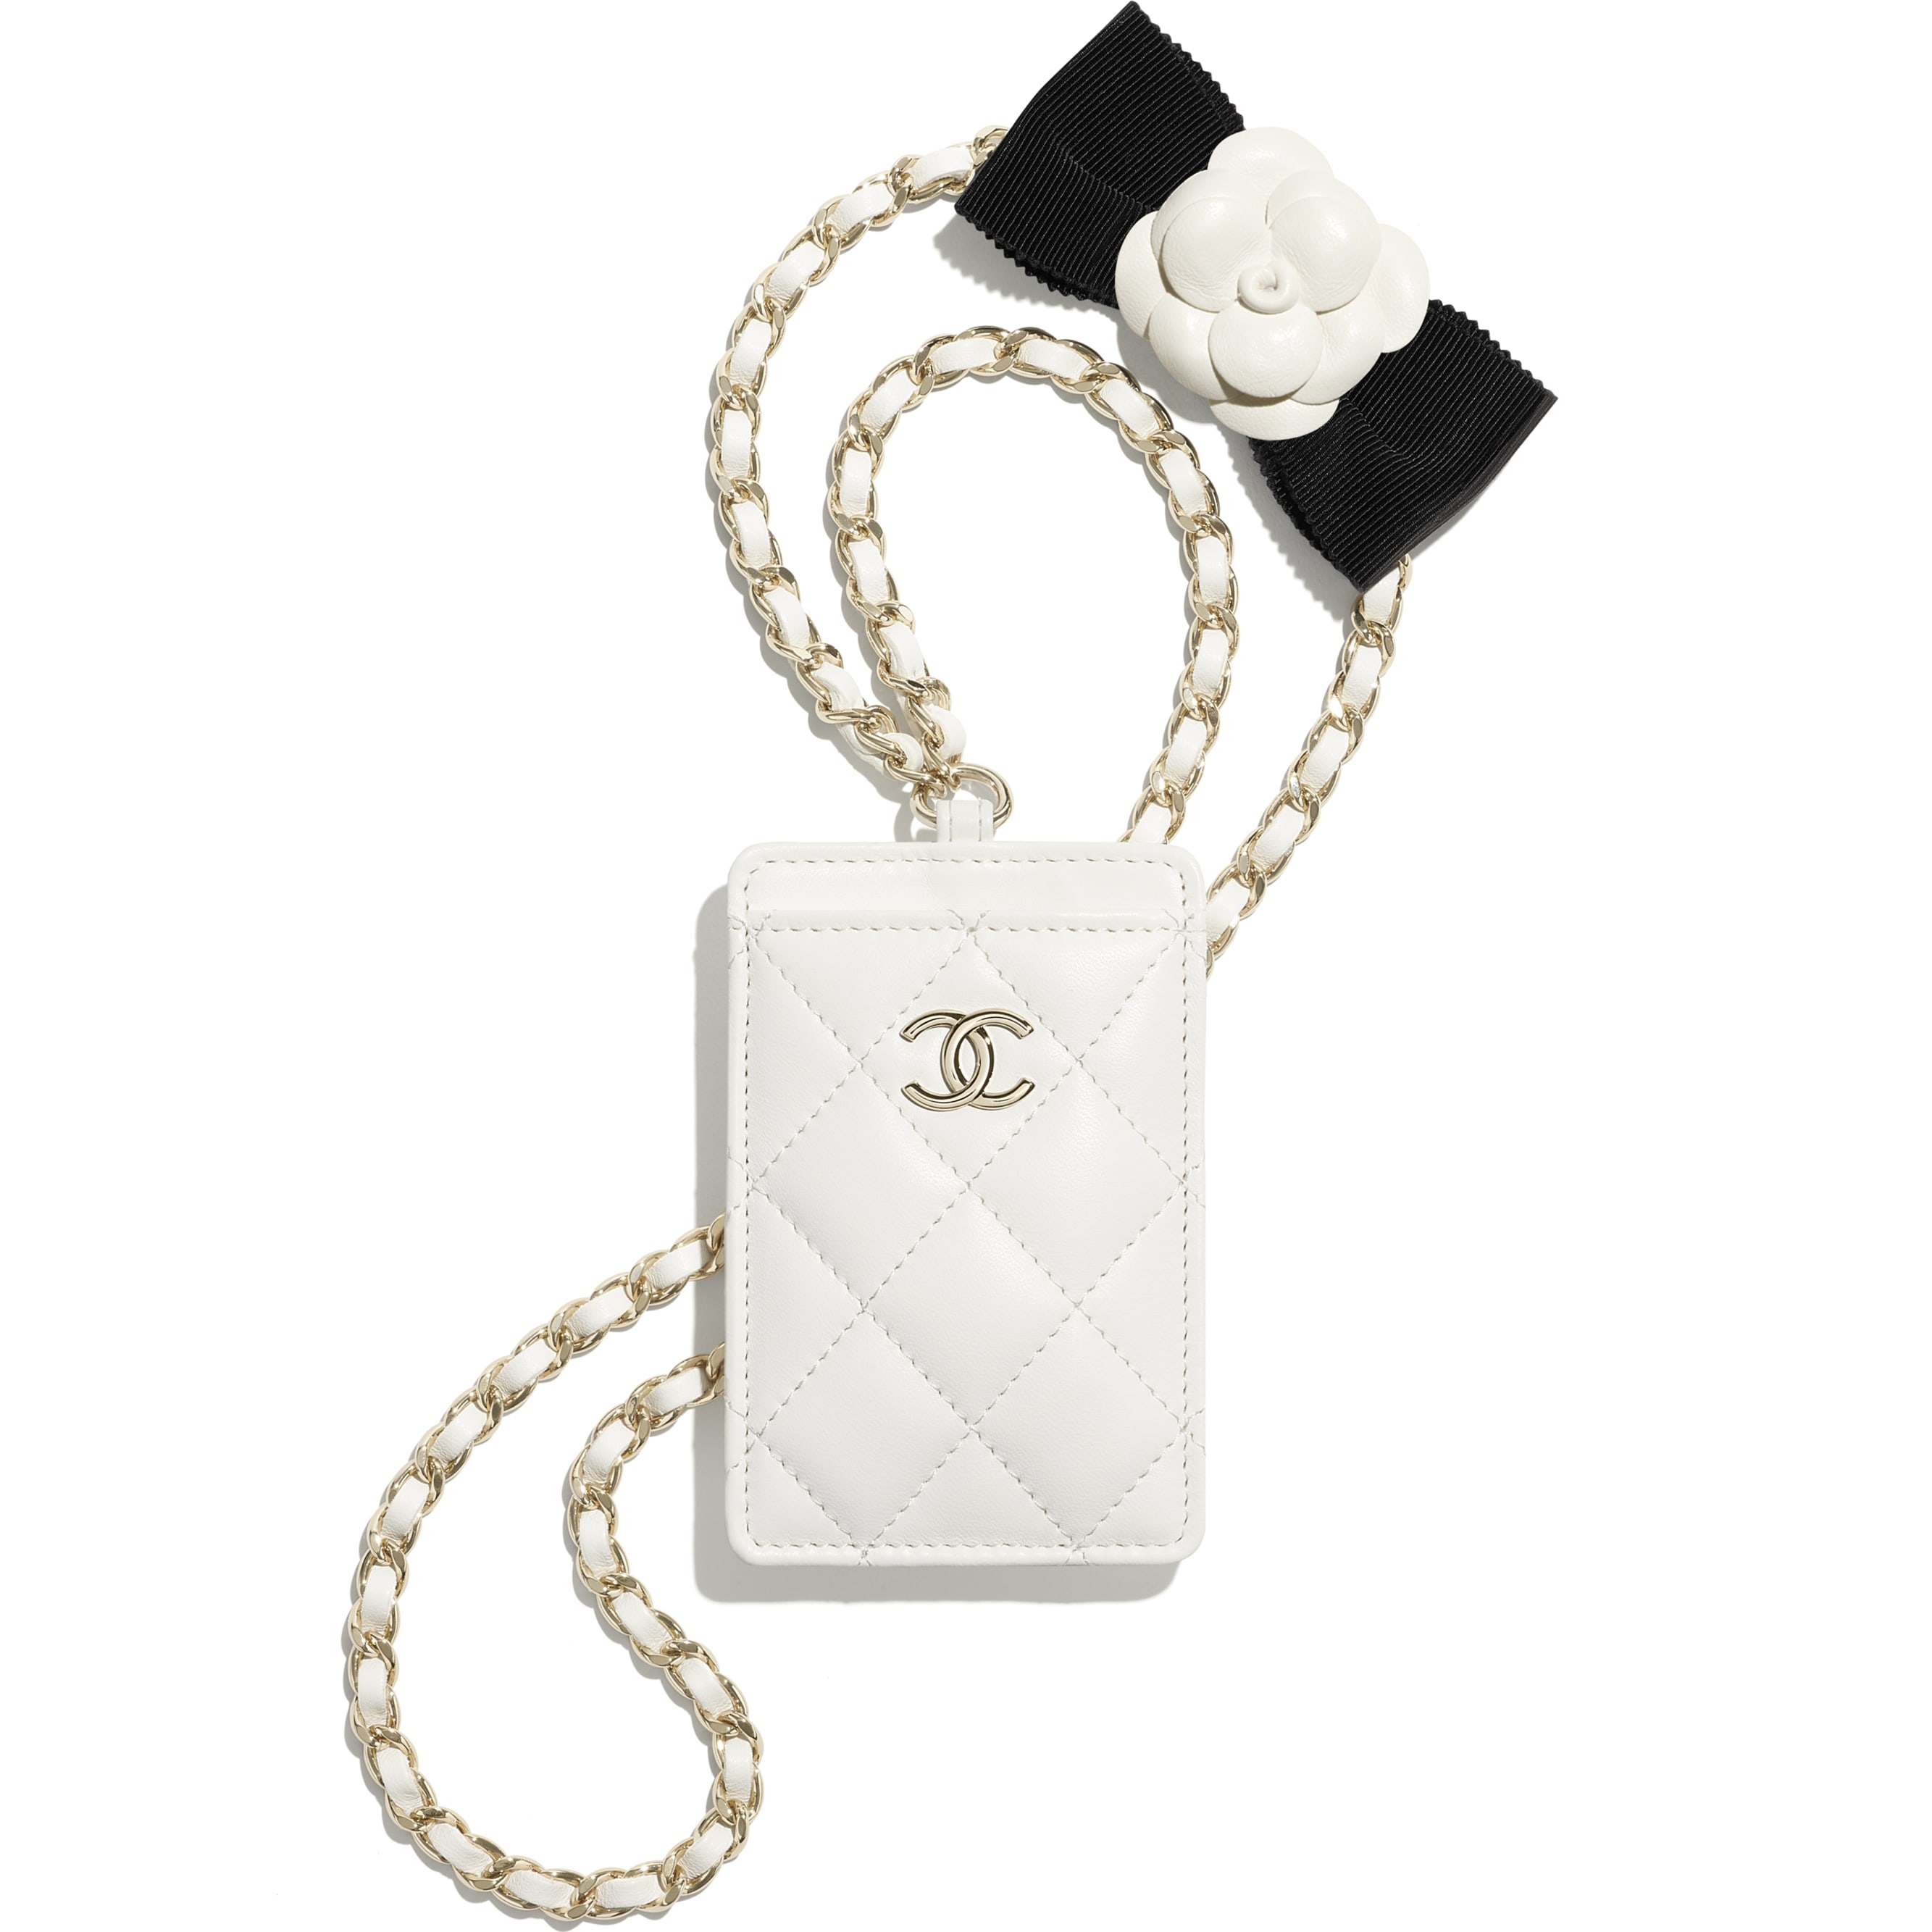 Card Holder with Chain - White - Lambskin - CHANEL - Default view - see standard sized version